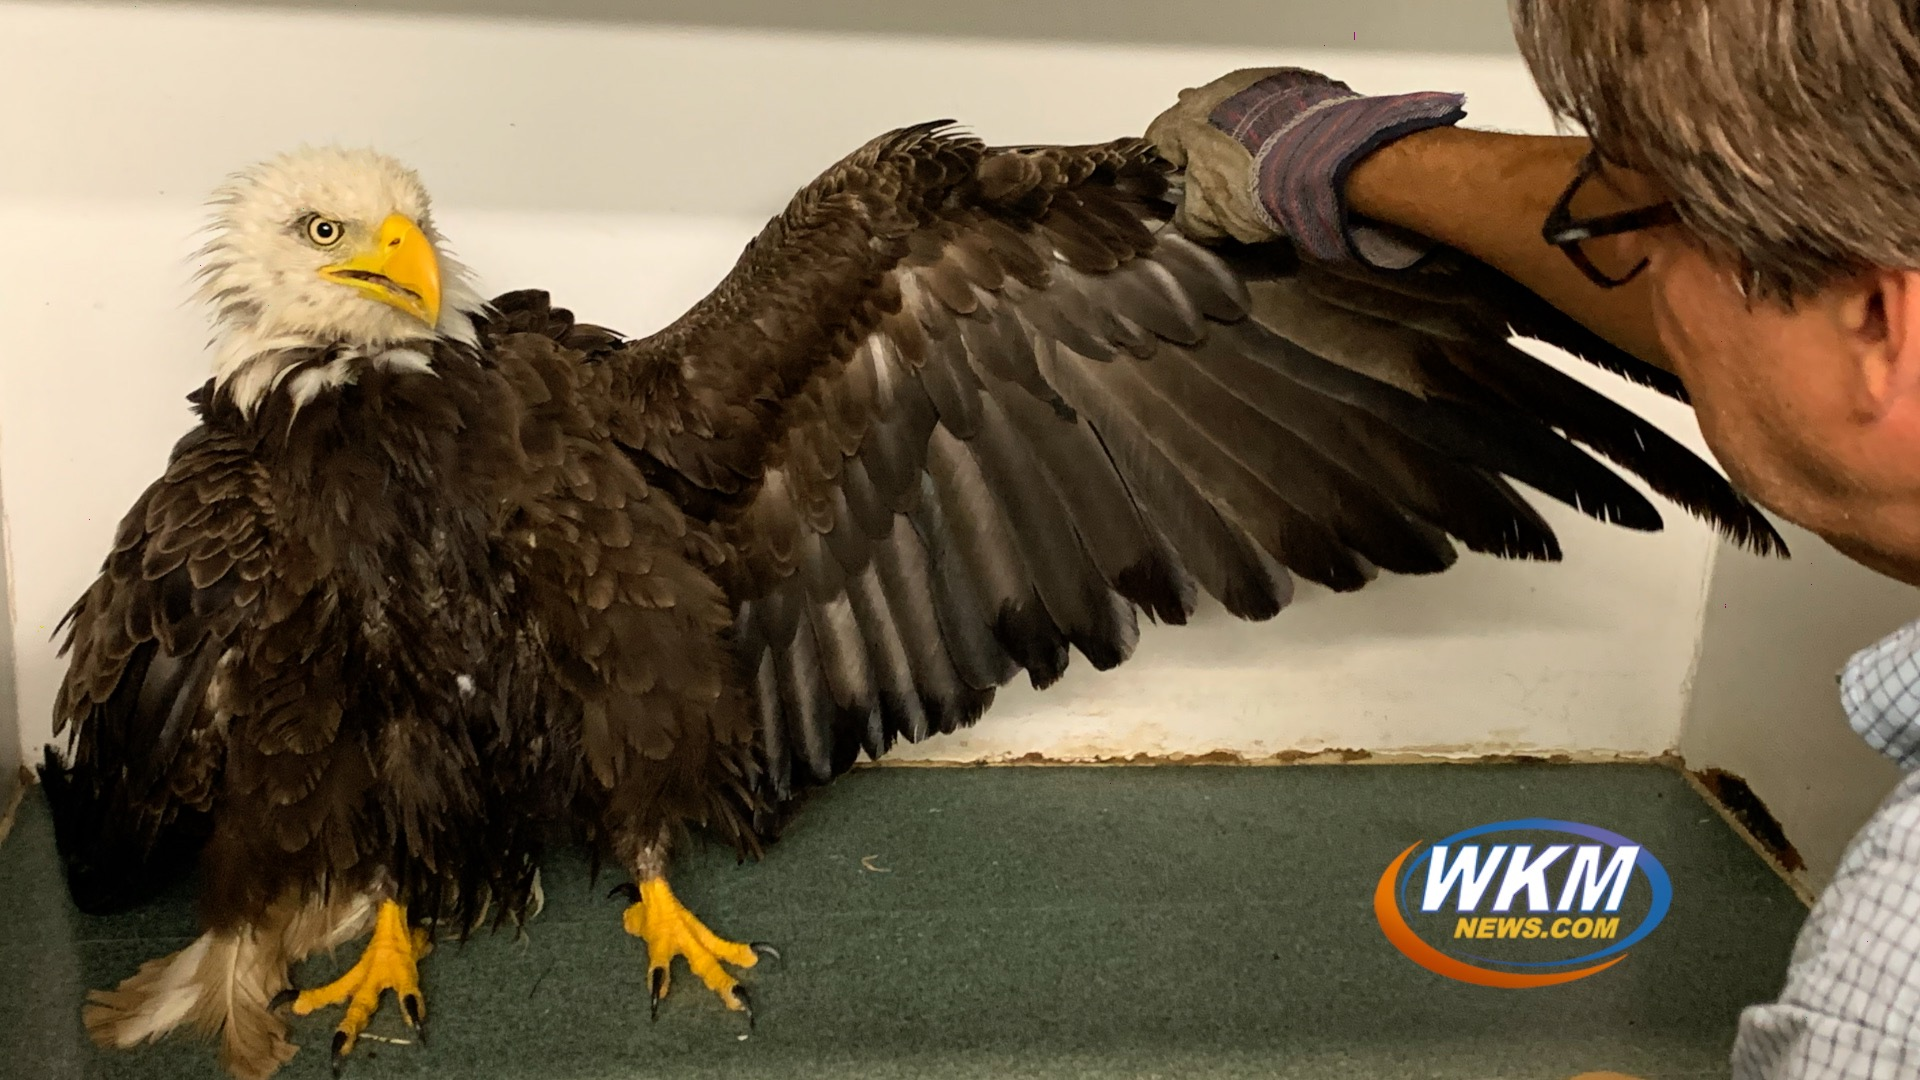 DNR Releases Rehabilitated Bald Eagle at Hardy Lake